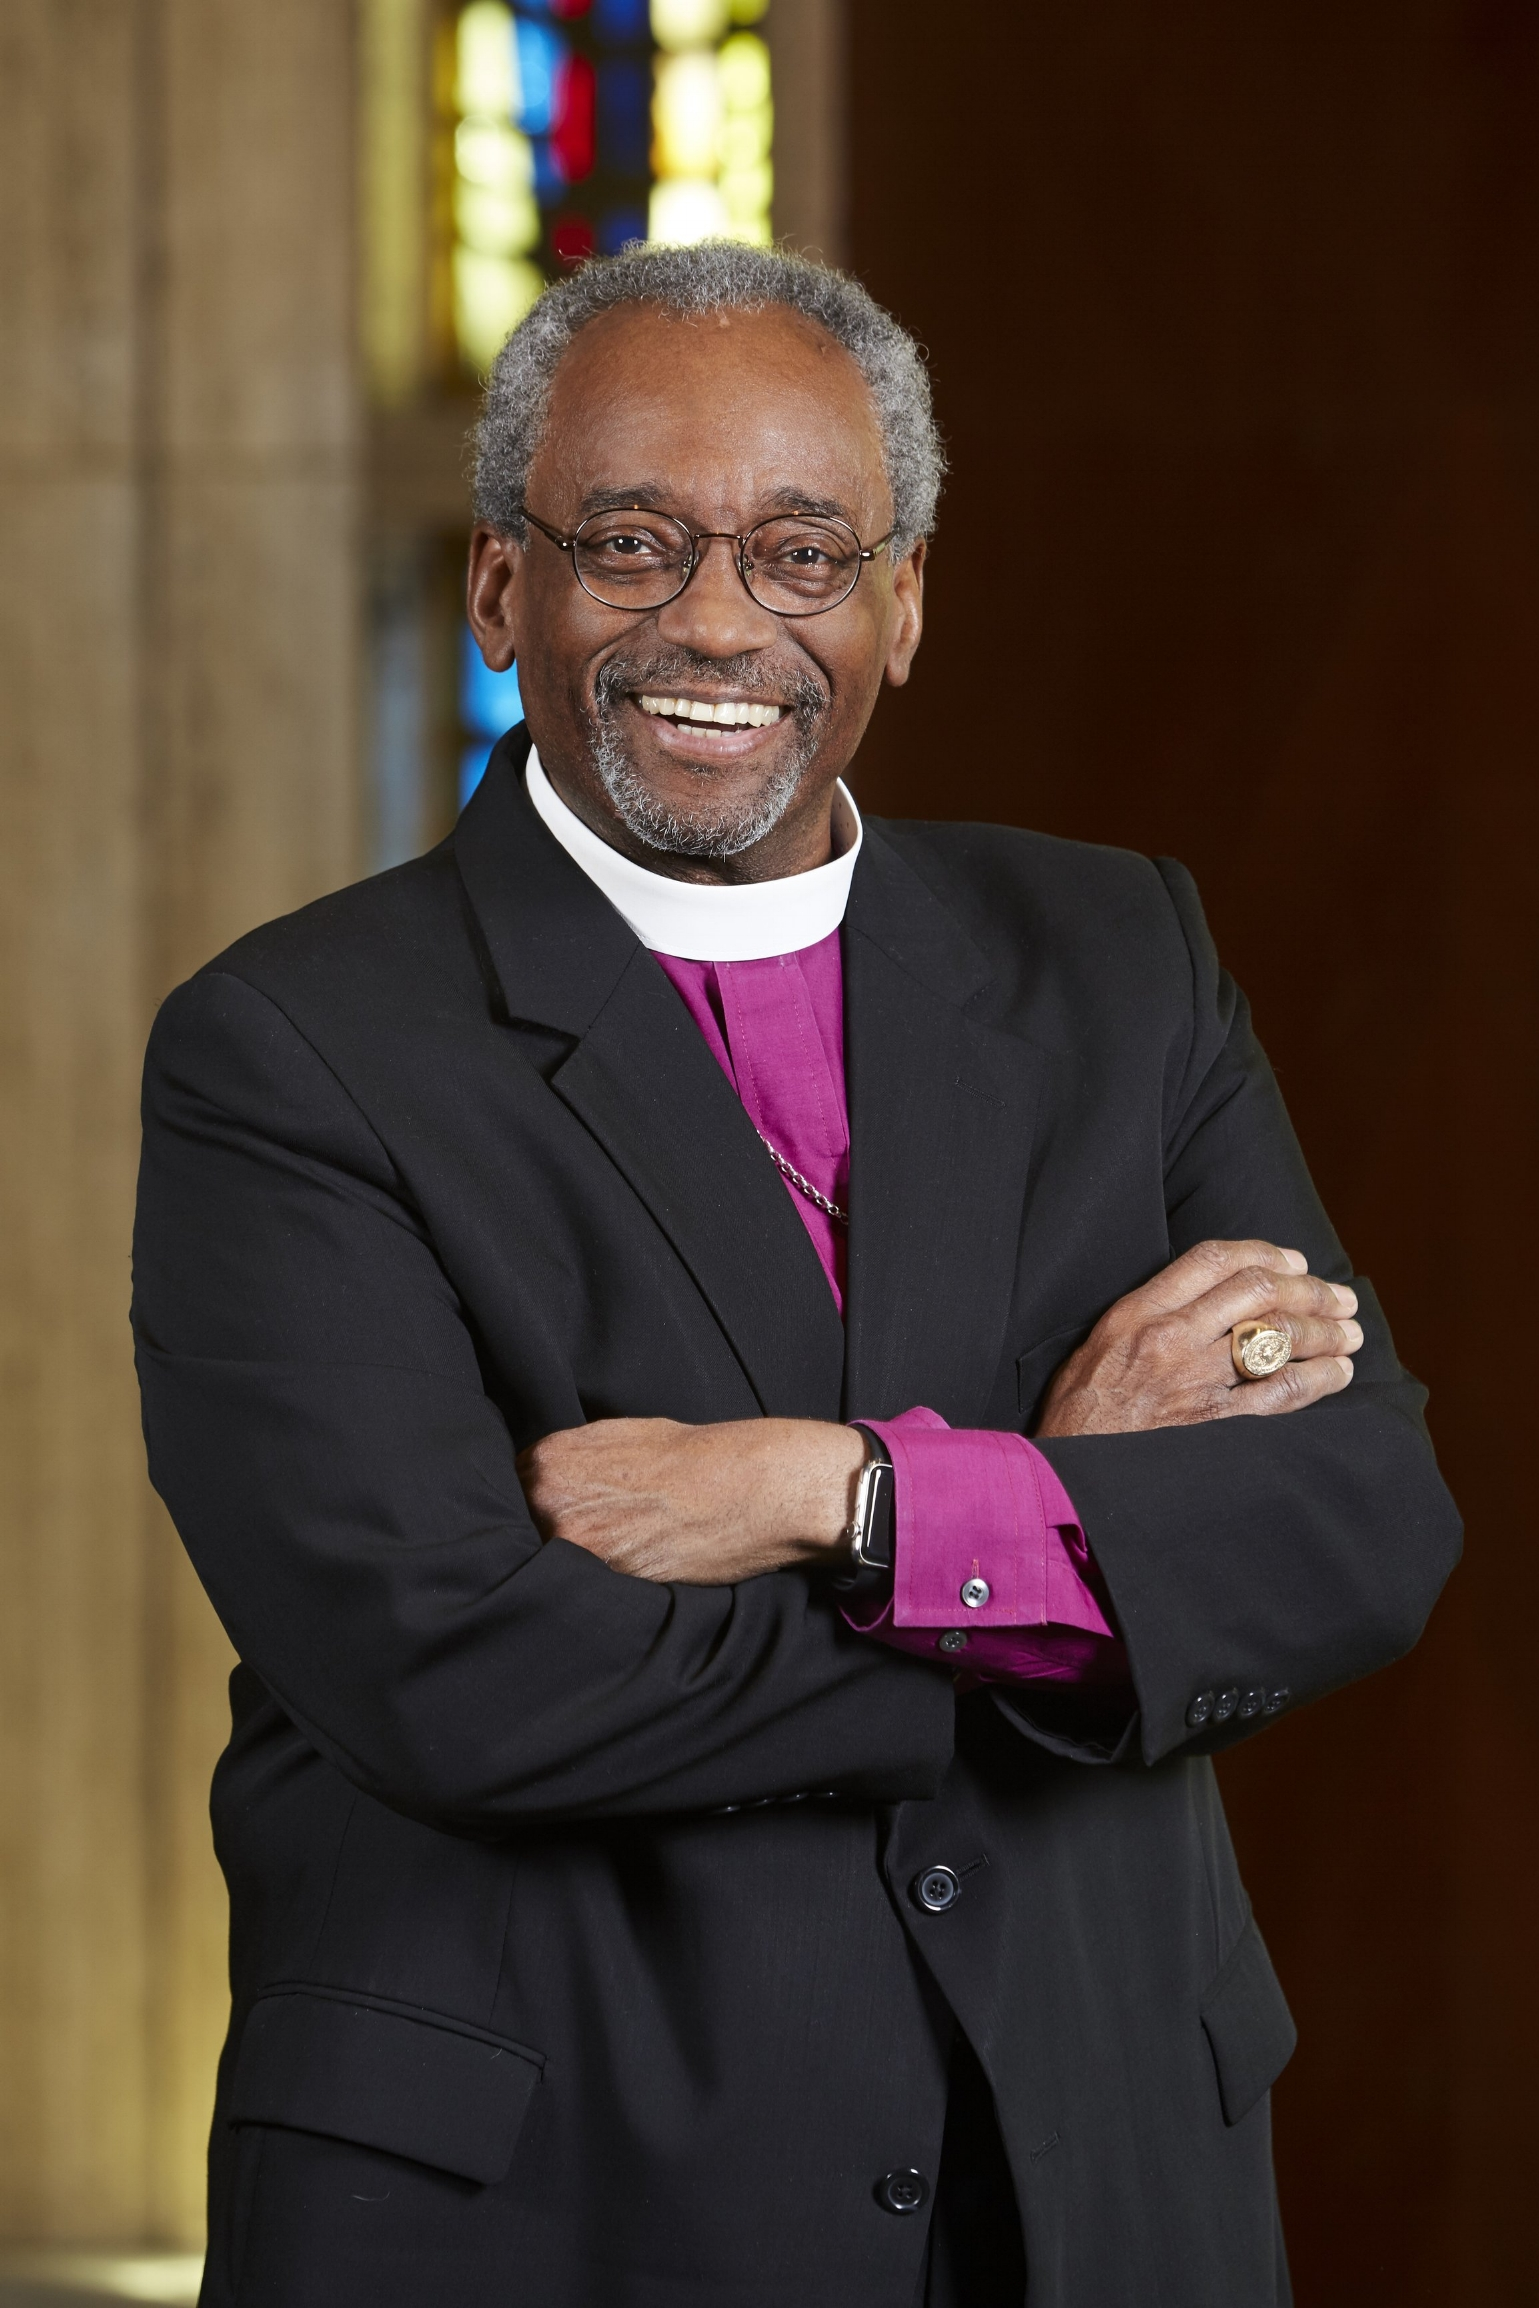 The Most Rev. Michael Curry